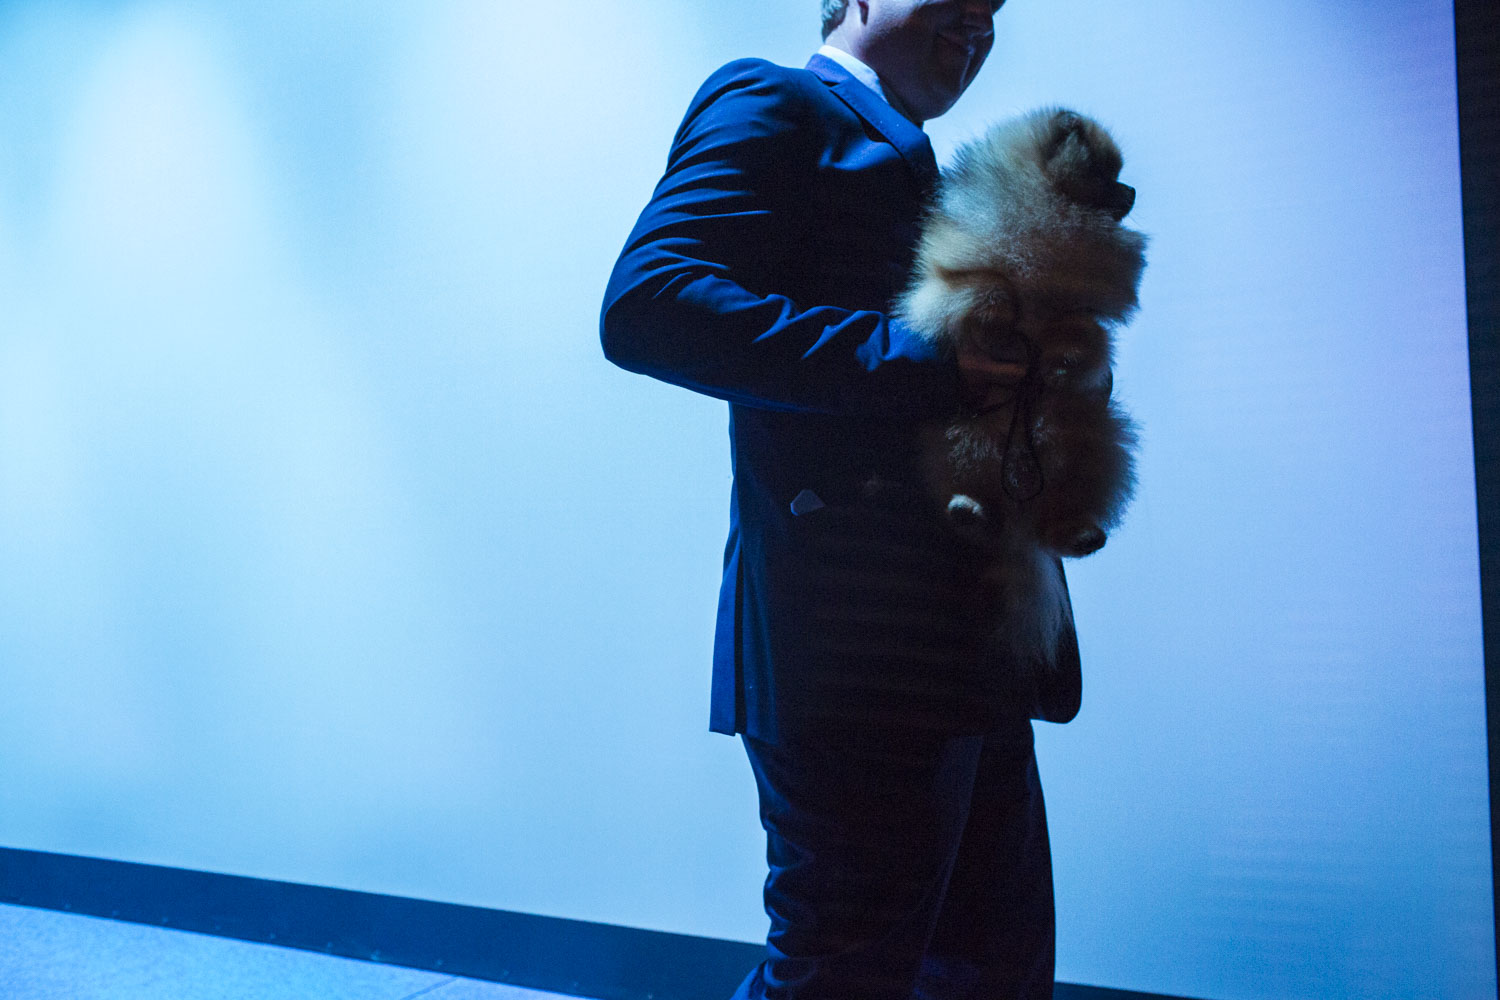 An unidentified man carries an unidentified dog from the main stage during the 2014 World Dog Show on Saturday, August 9th, 2014, in Helsinki, Finland.